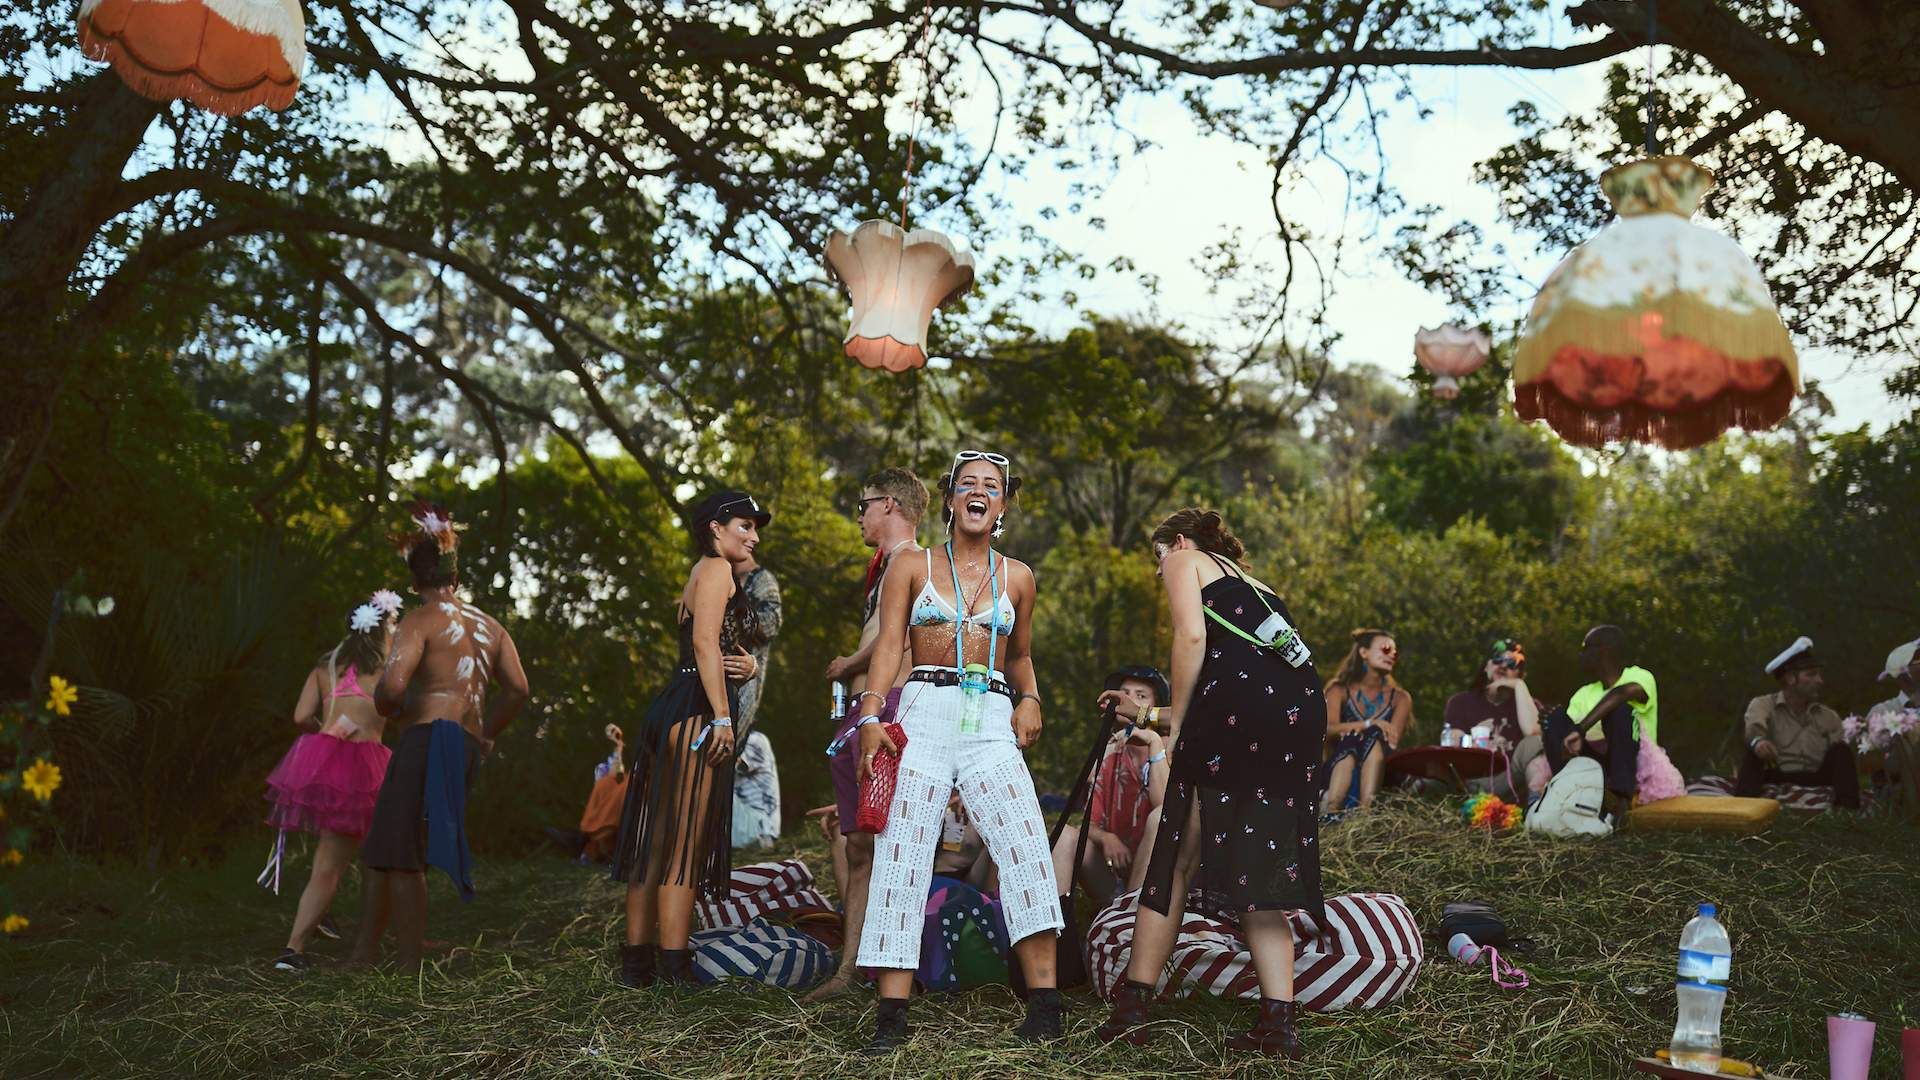 The First Artist Lineup Has Been Announced for Splore 2019